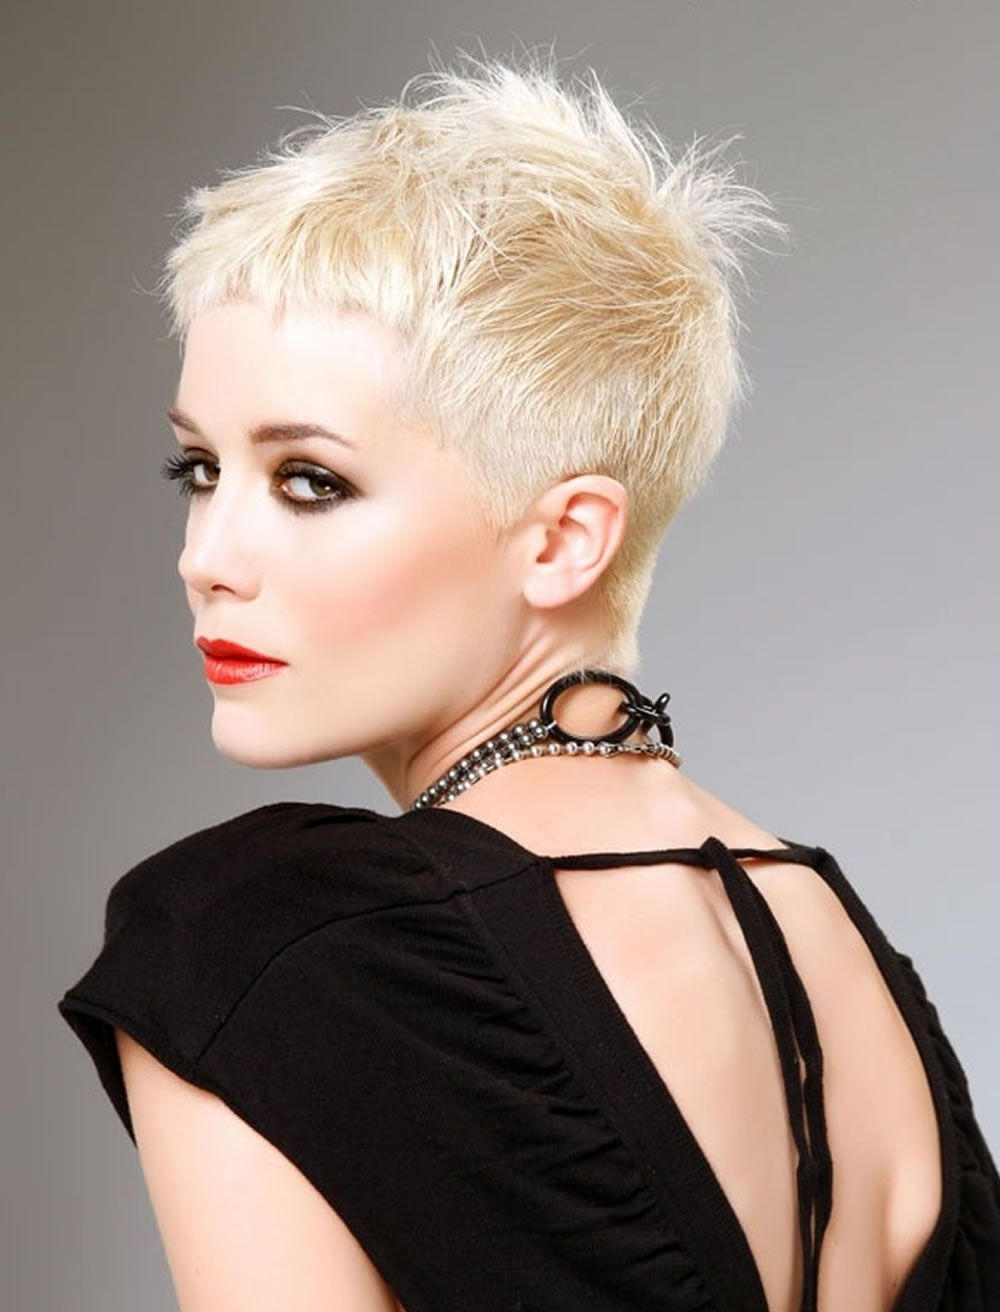 2018 Very Short Pixie Hairstyles & Haircuts Inspiration Inside Most Up To Date Pixie Hairstyles With Short Bangs (View 15 of 15)